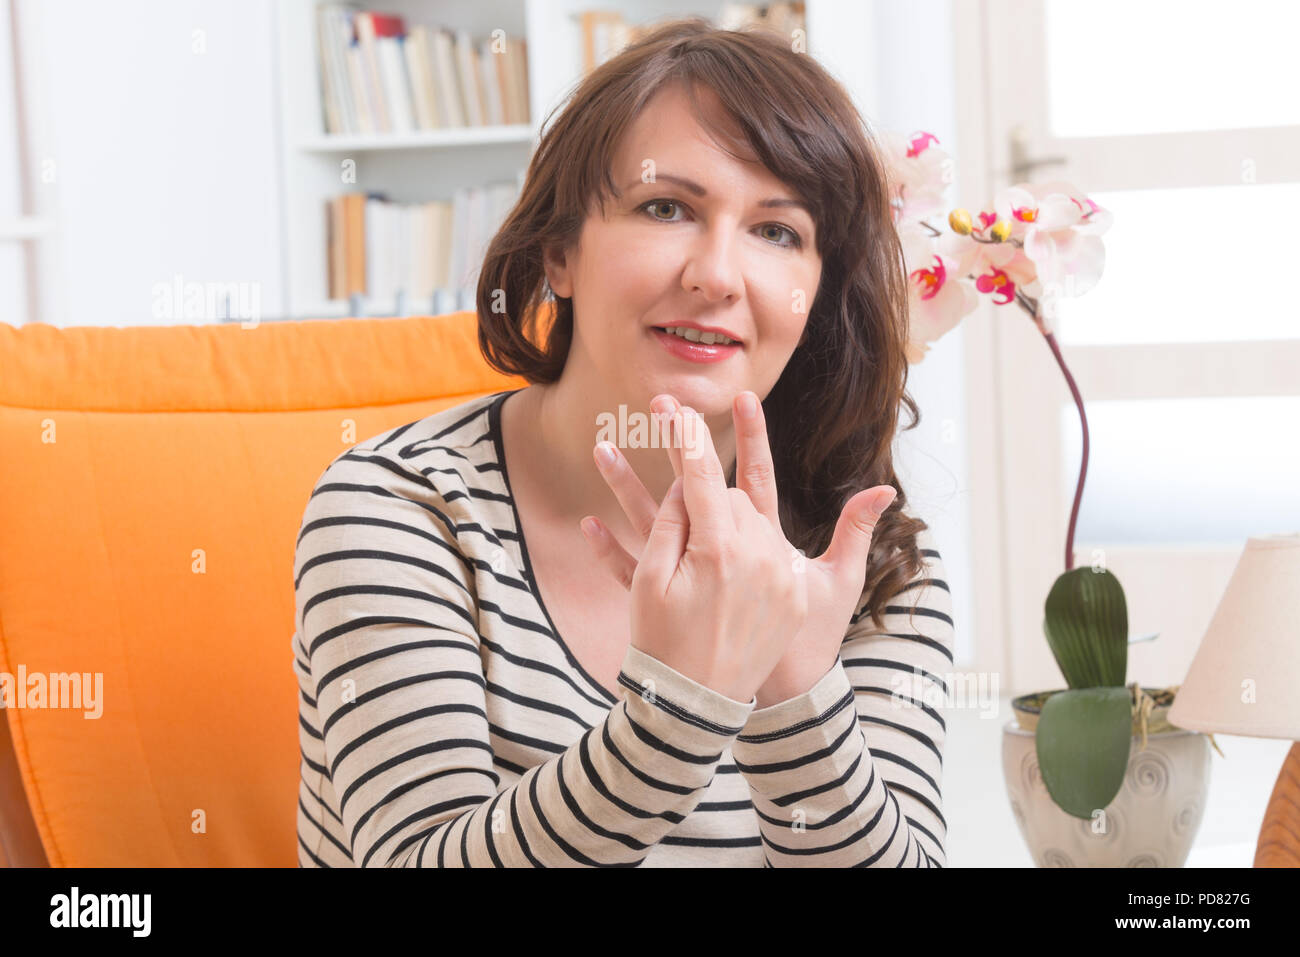 Woman doing EFT on the finger point. Emotional Freedom Techniques, tapping, a form of counseling intervention that draws on various theories of altern - Stock Image